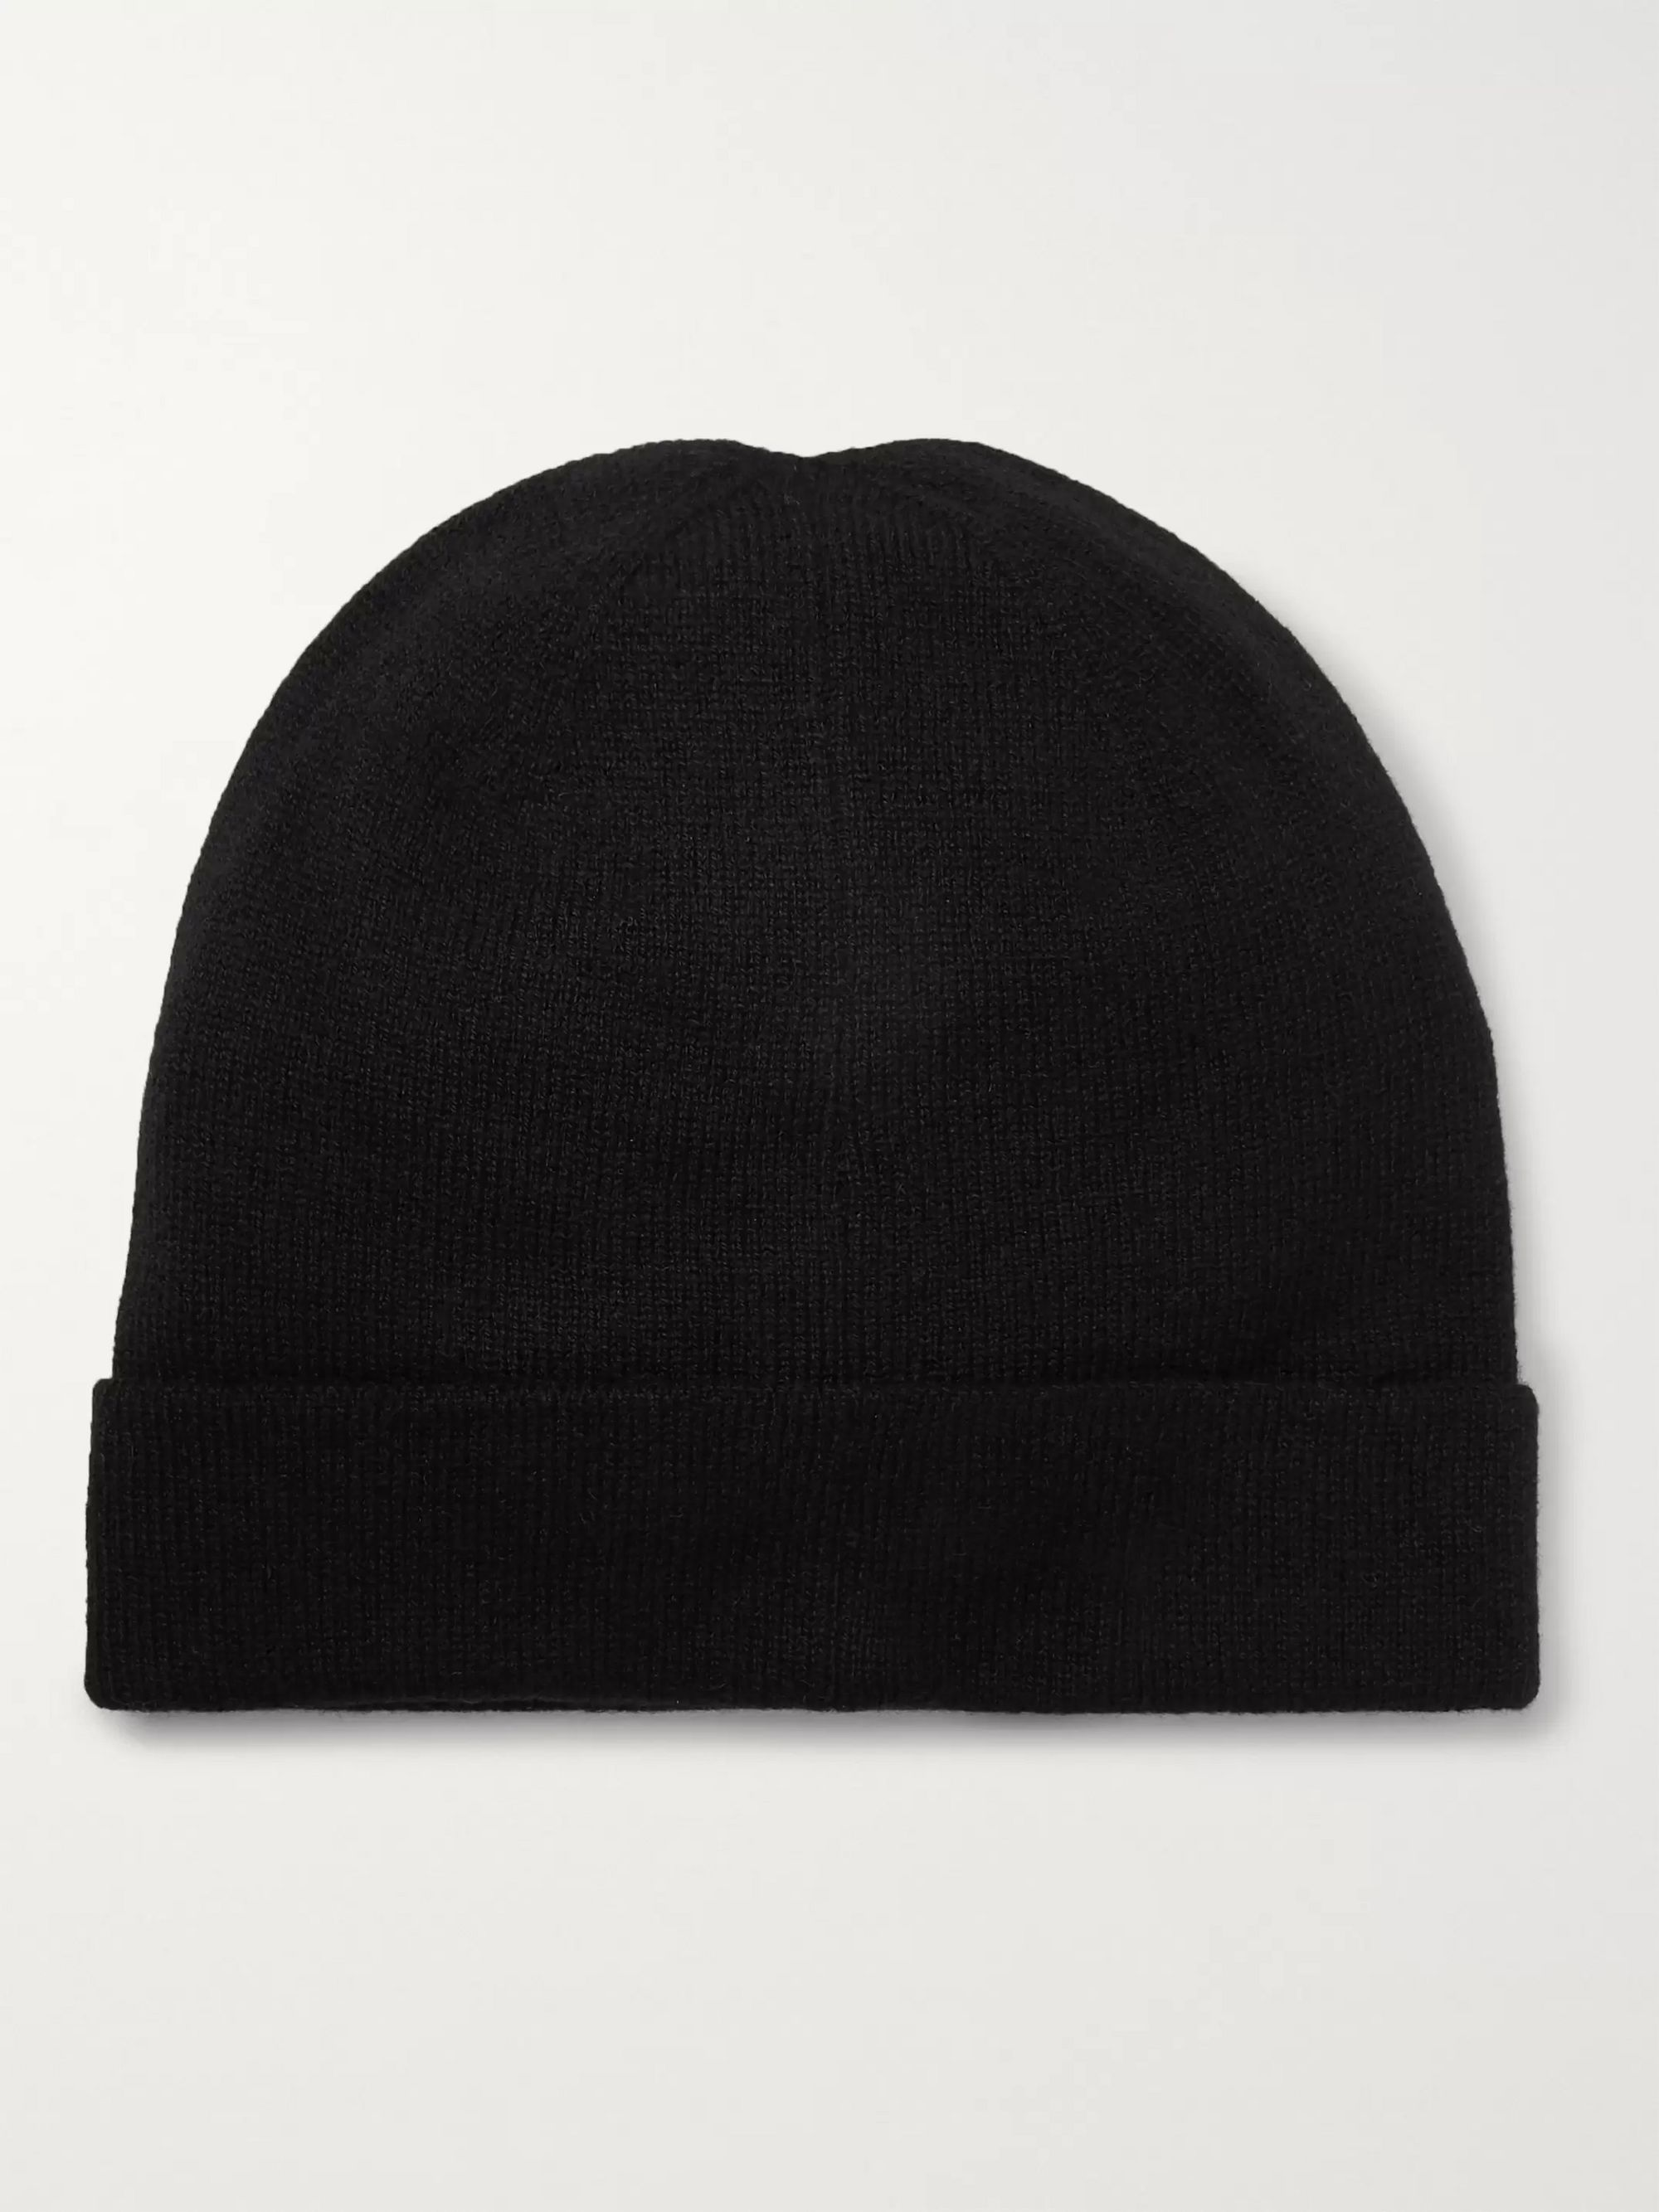 Givenchy Logo-Embroidered Cashmere Beanie